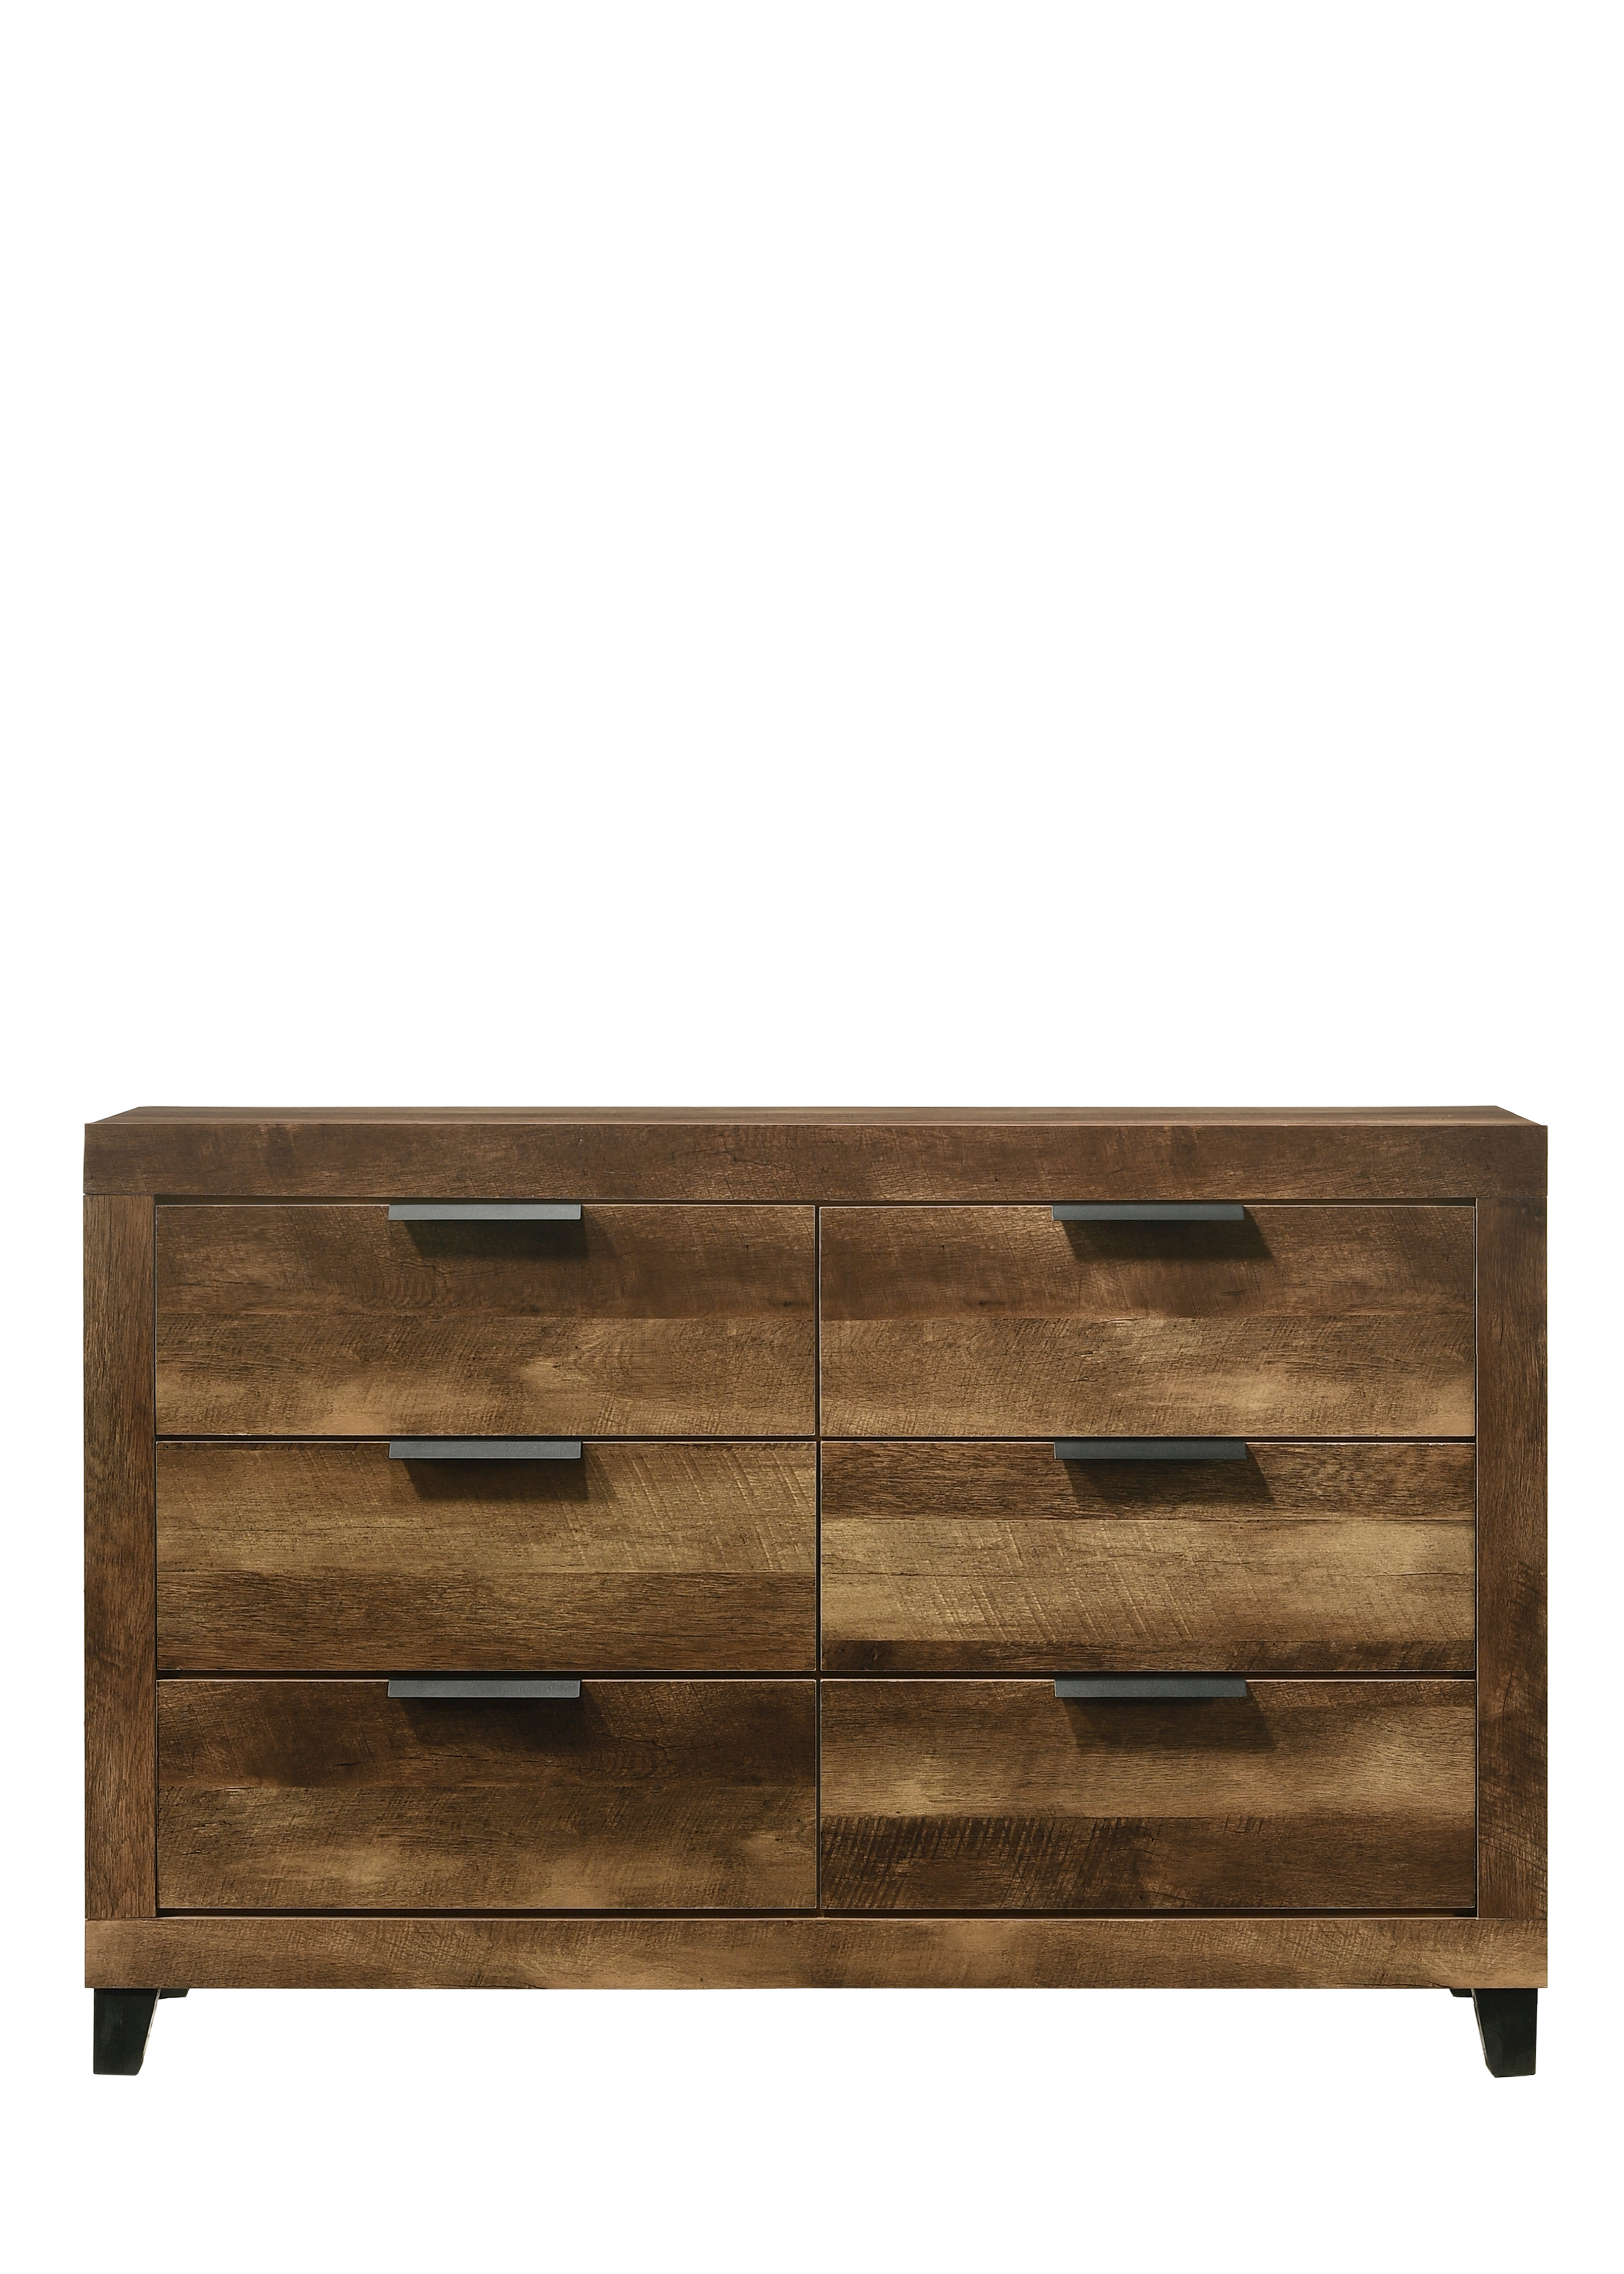 Morales Dresser by Acme Furniture at Dream Home Interiors